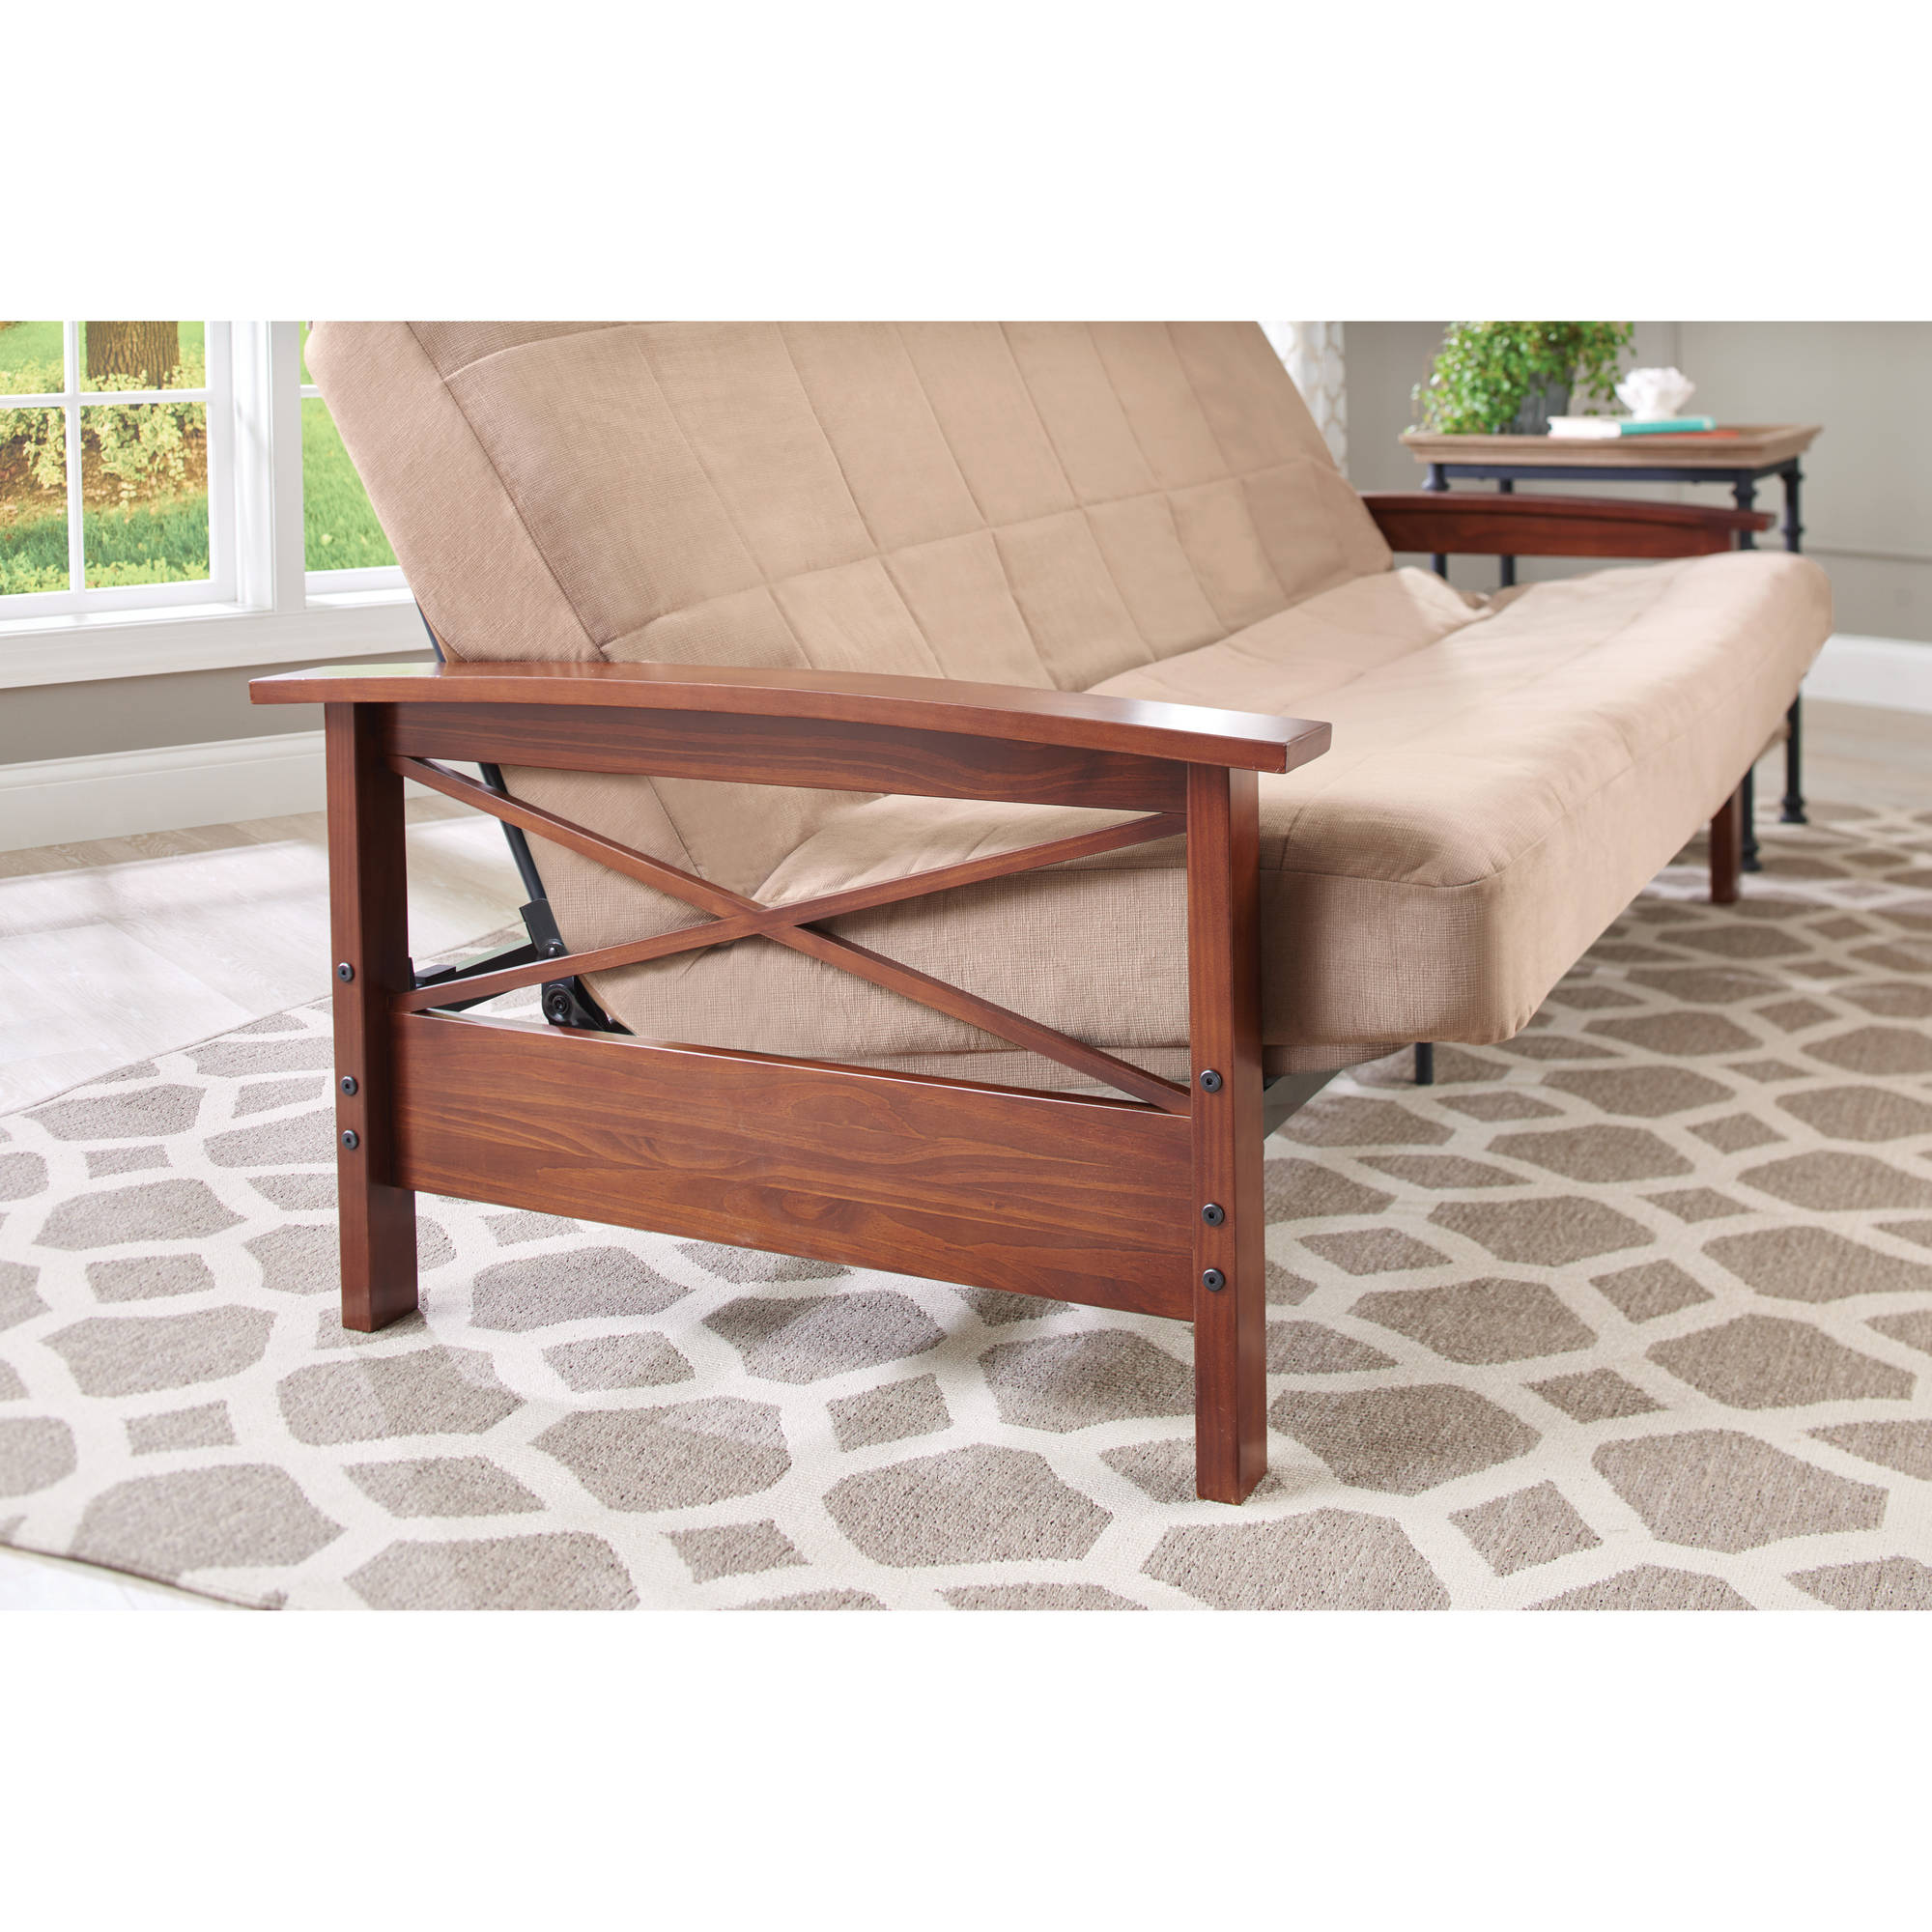 Mainstays Mission Wood Arm Futon Home Decor